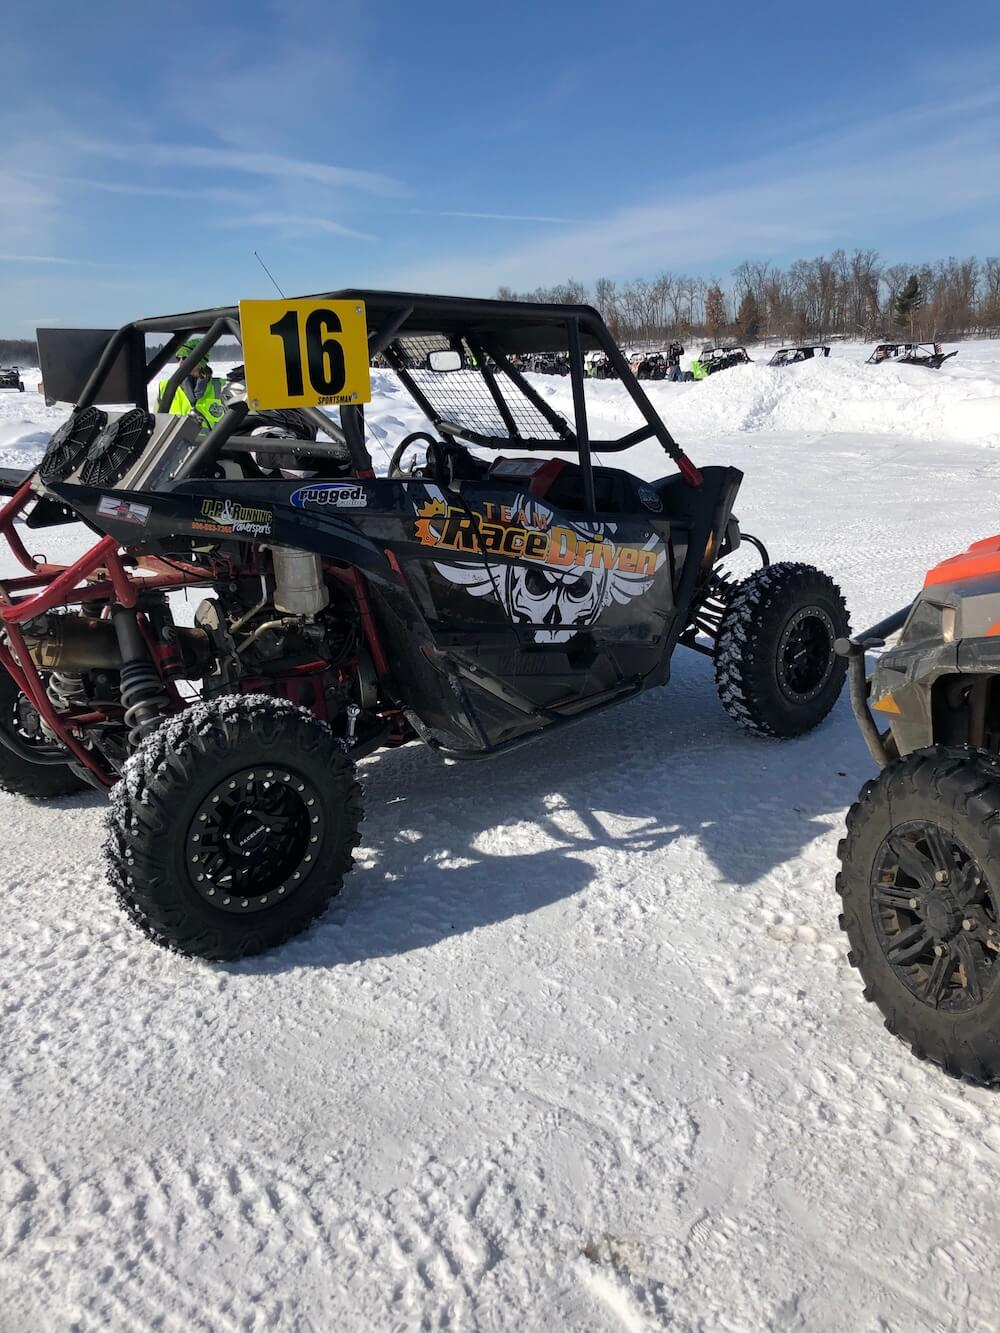 Black sxs sponsored by RaceDriven waiting to be let on the ice race track at the Twin Bridge Takedown